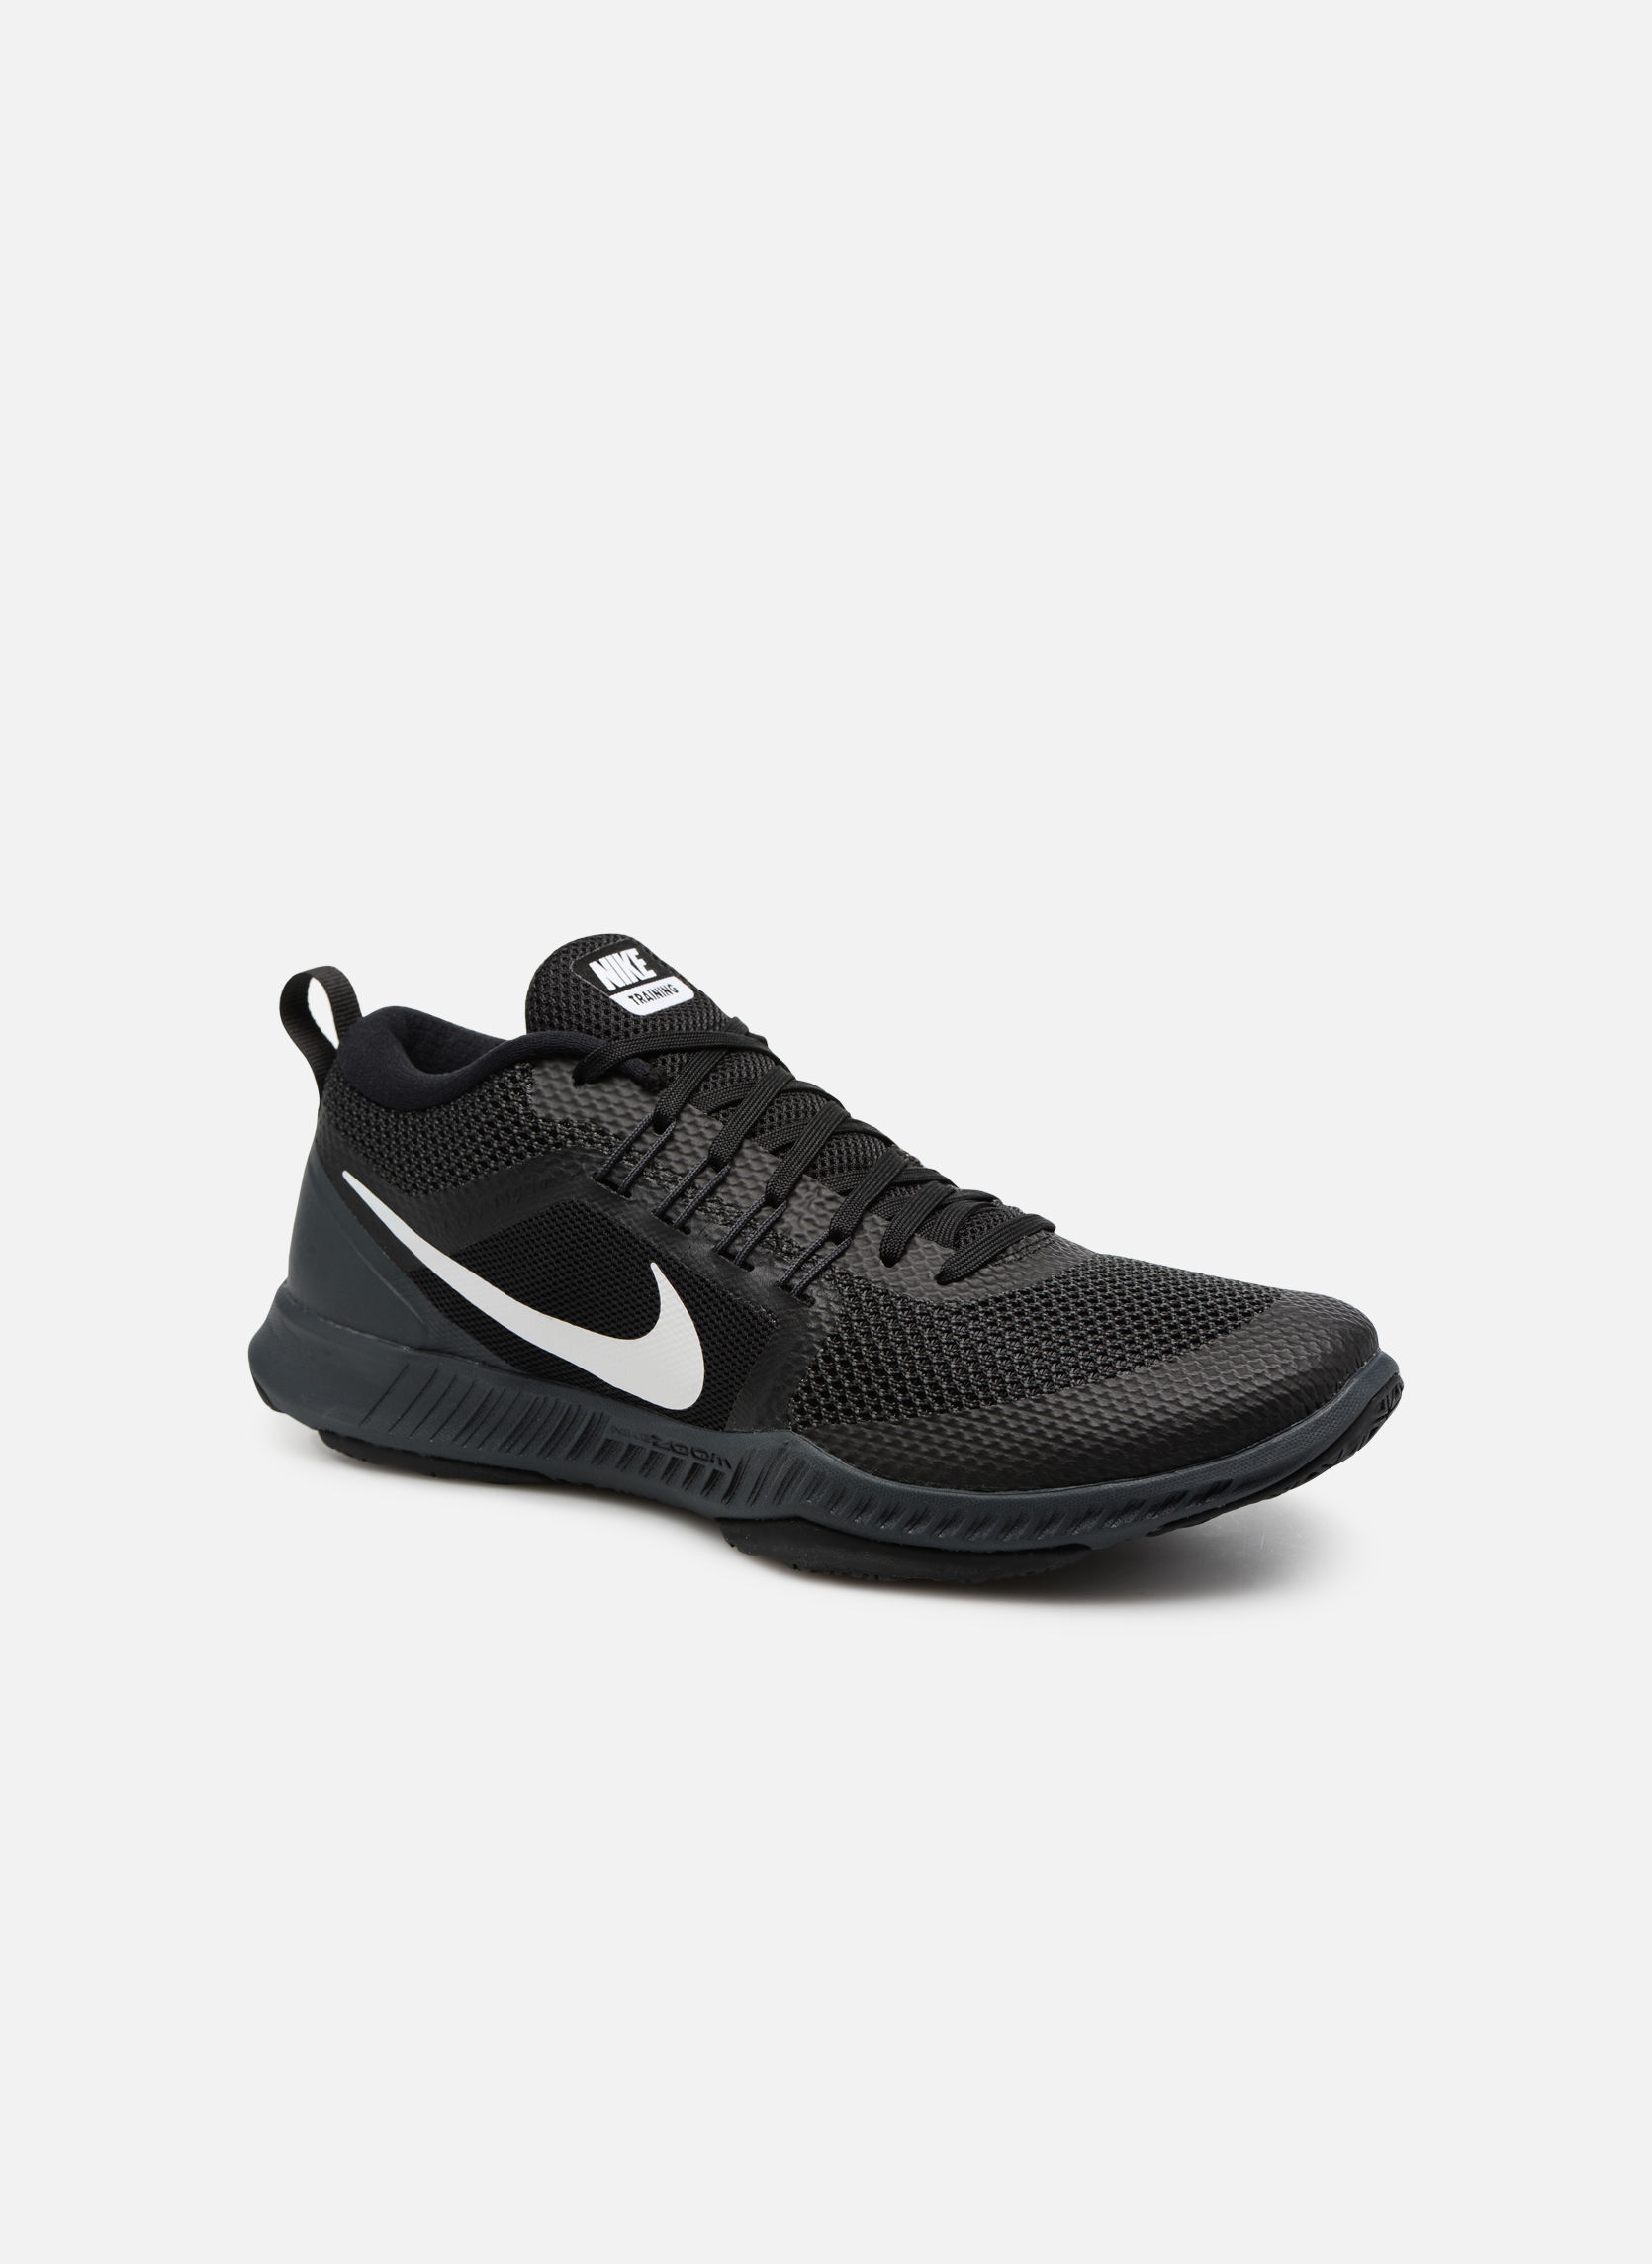 Nike Zoom Domination Tr Black/white-anthracite